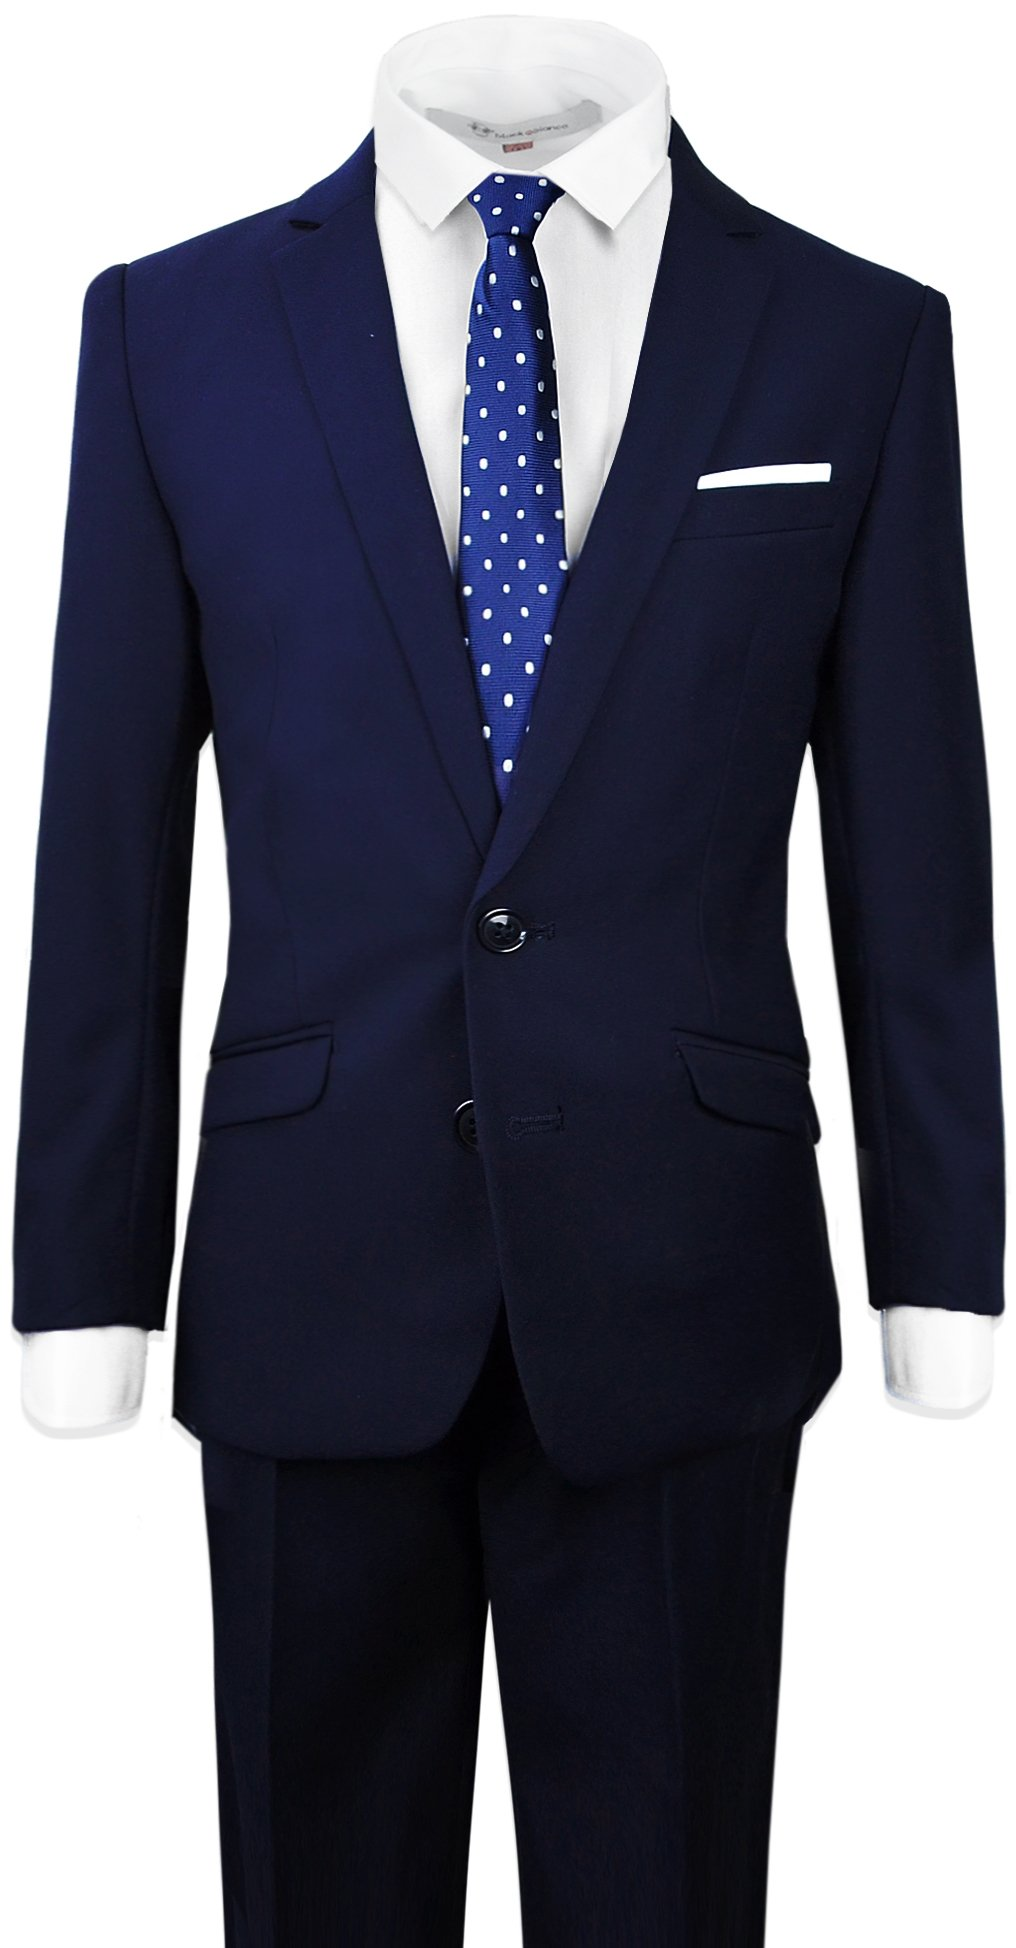 Black n Bianco Signature Boys' Slim Fit Suit in Navy Size 16